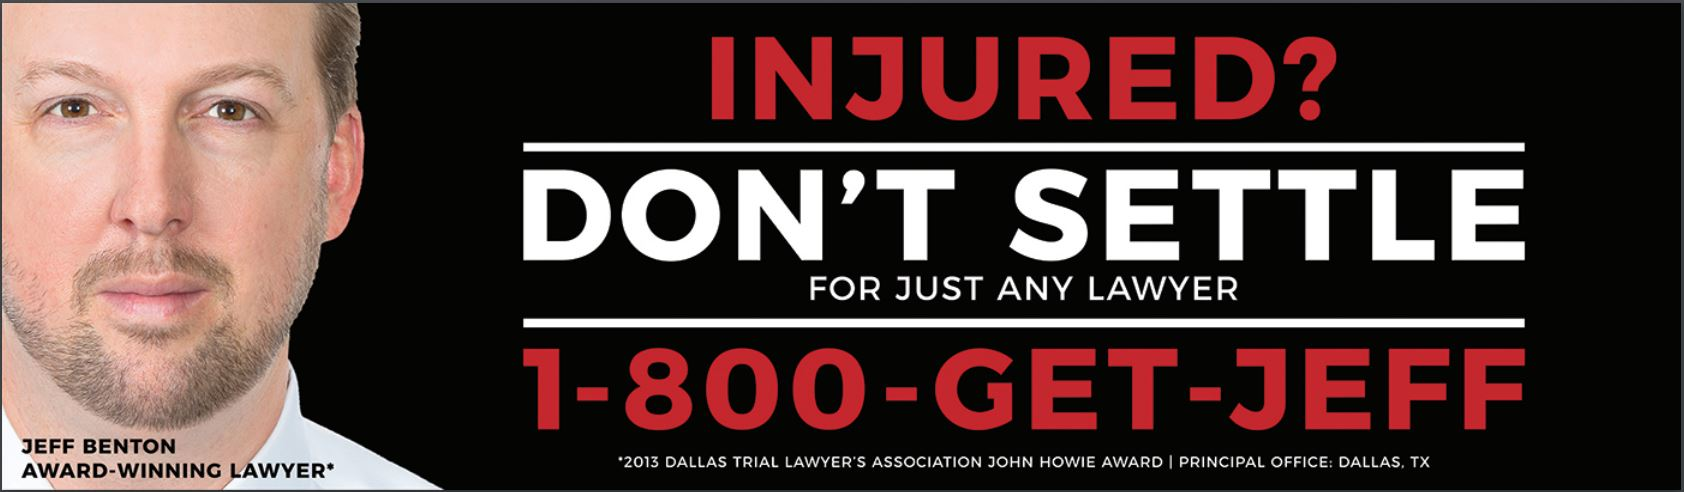 benton law firm ad